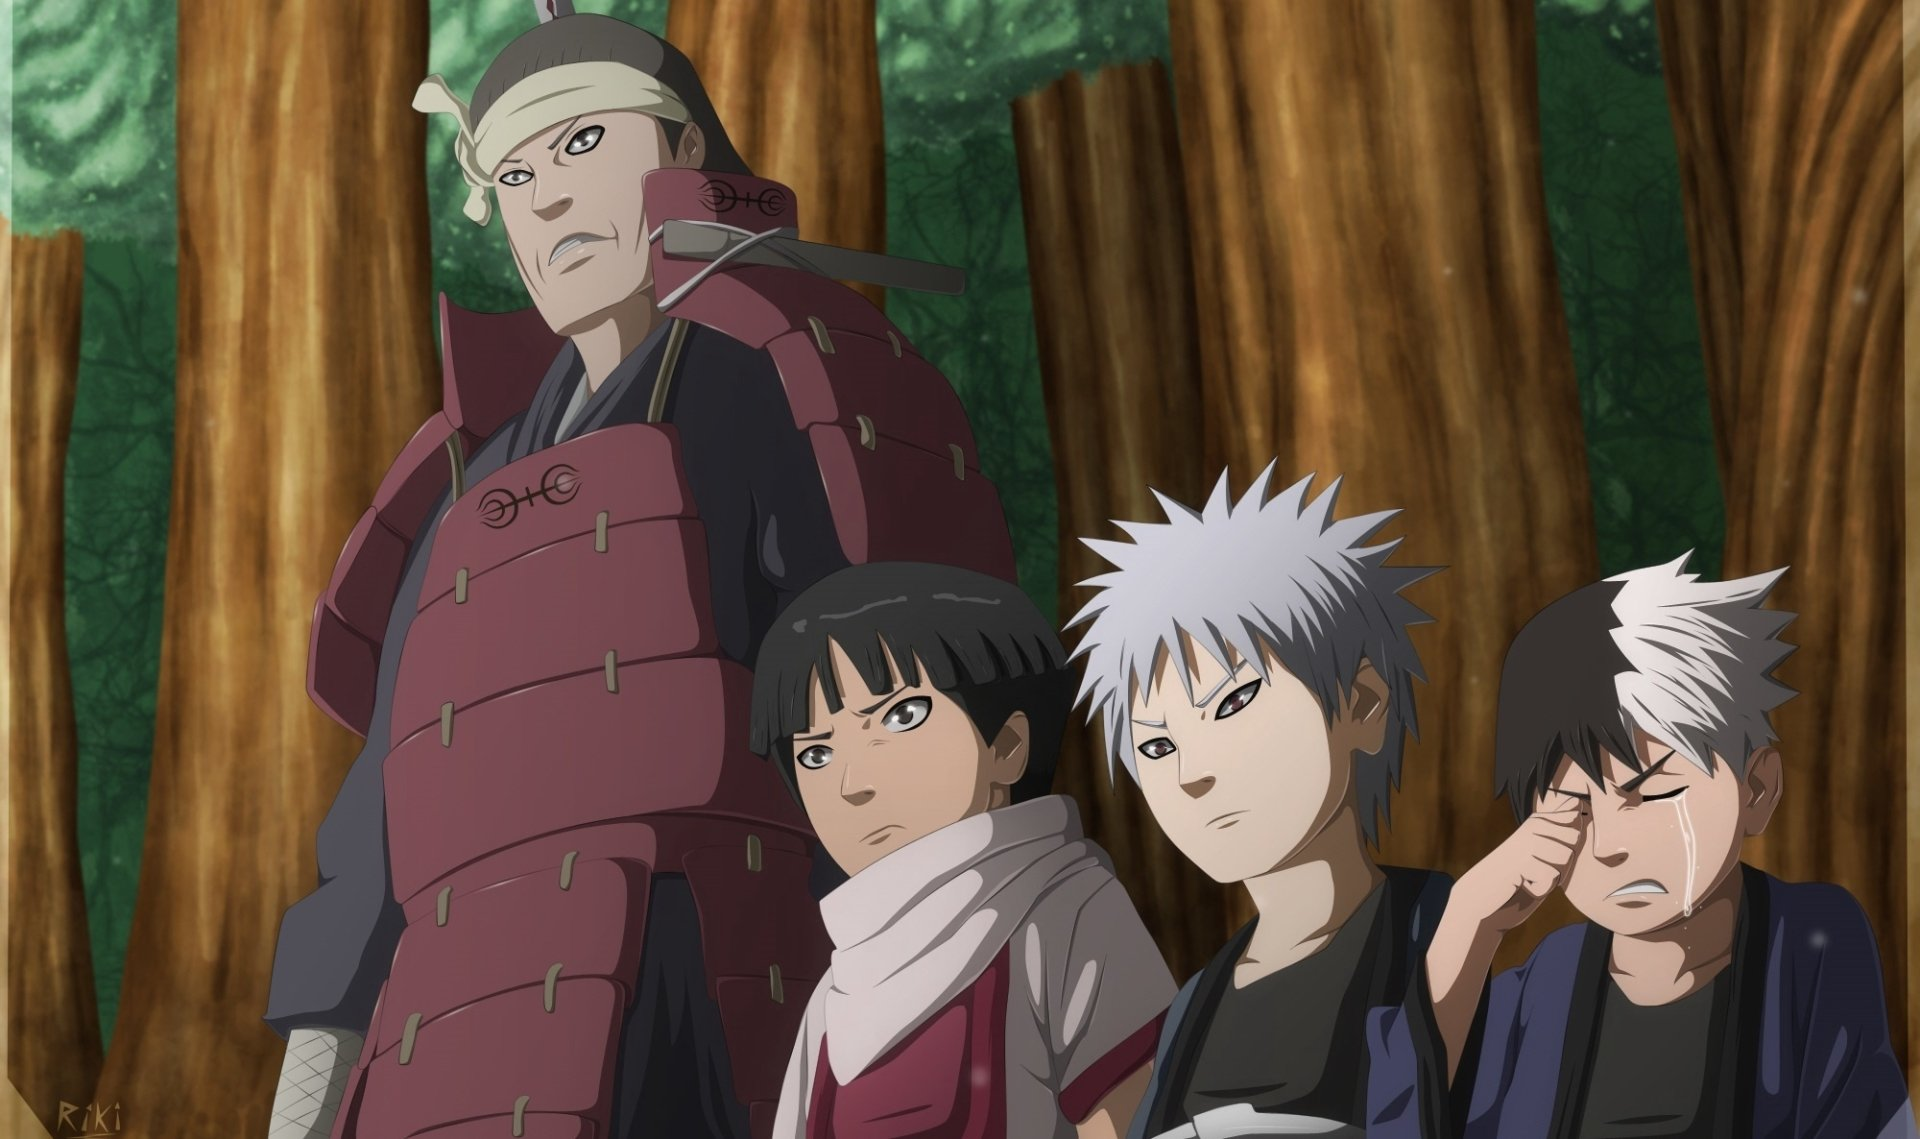 Naruto Live Wallpaper Iphone X Senju Family Full Hd Wallpaper And Background Image